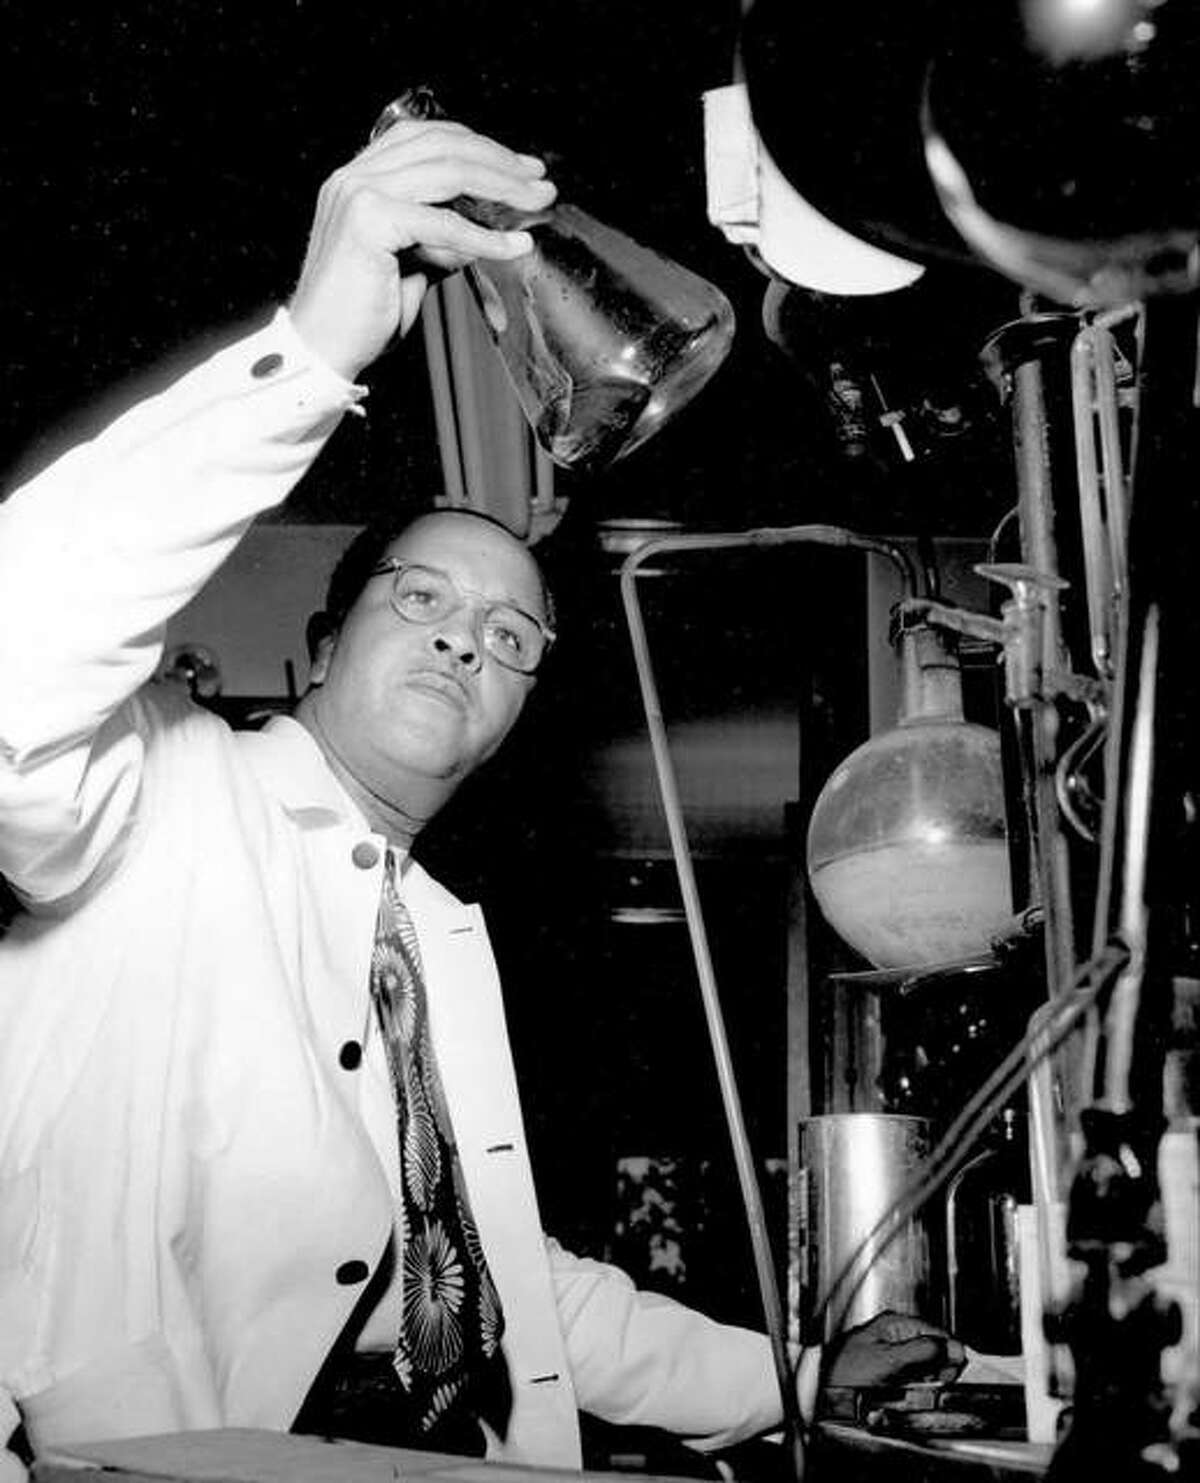 Dr. Percy L. Julian discovered many of our medicines that we depend upon for healthy living.